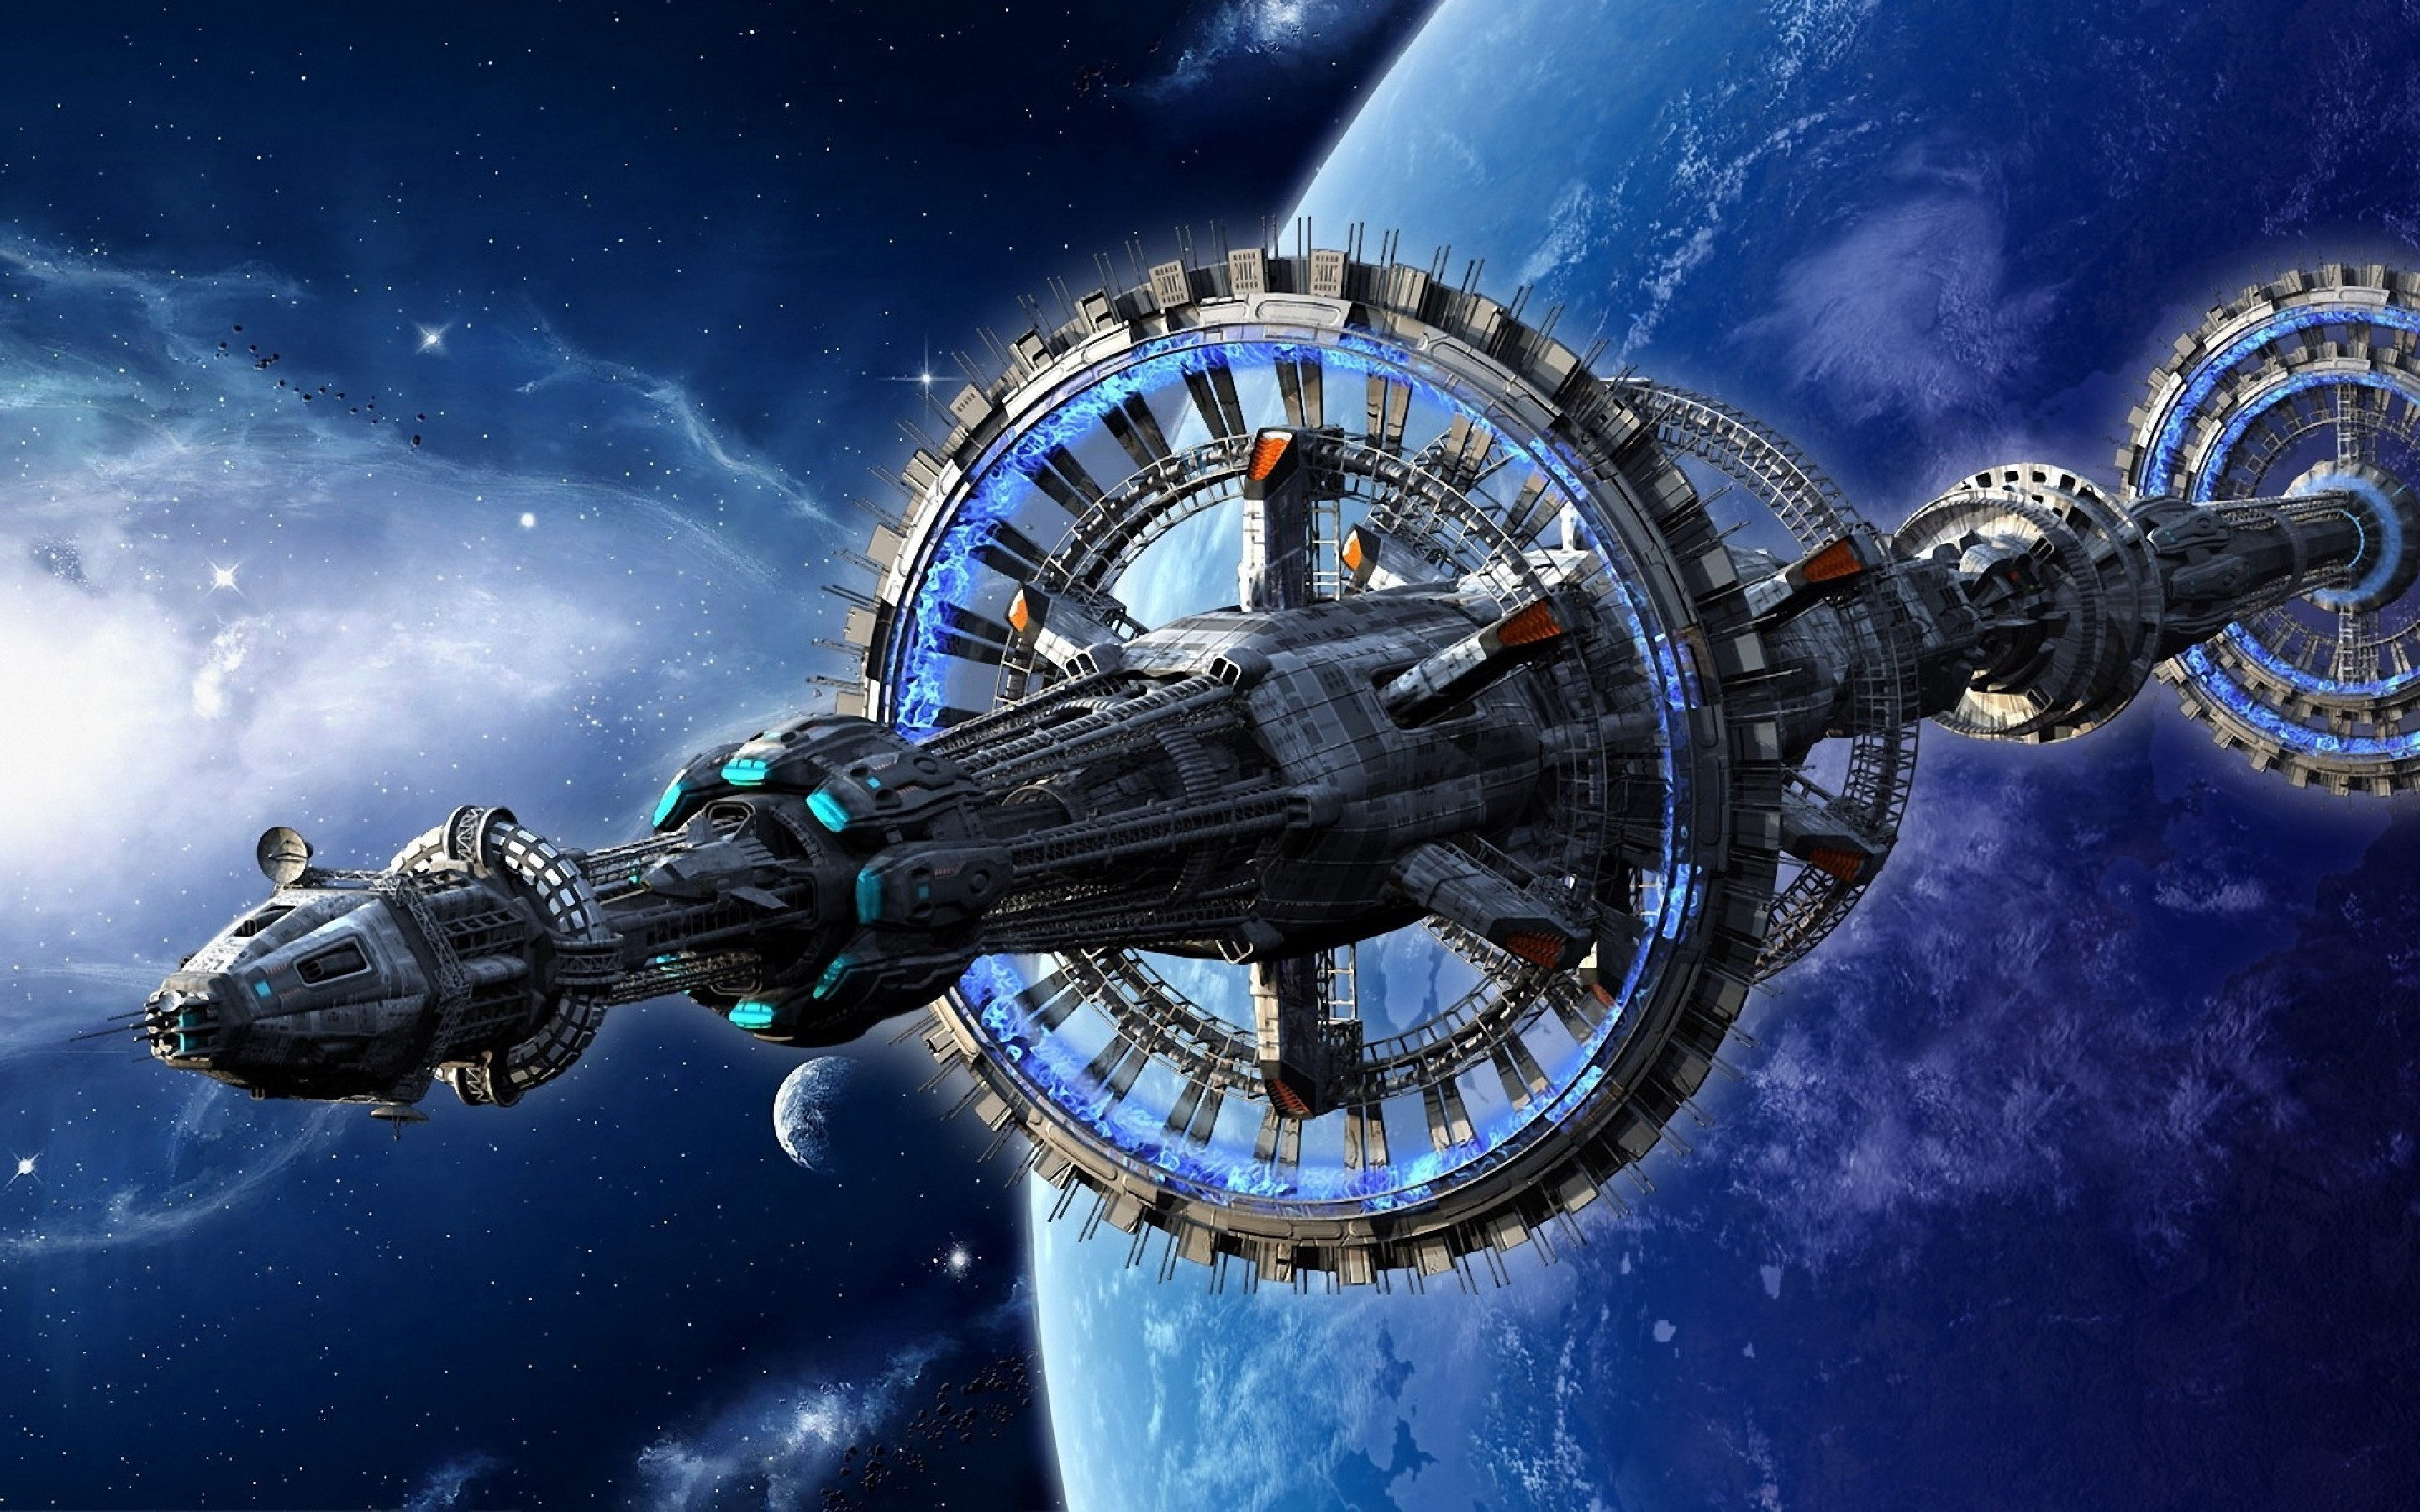 free high resolution wallpaper space station. space station – Full HD  Wallpaper, Photo